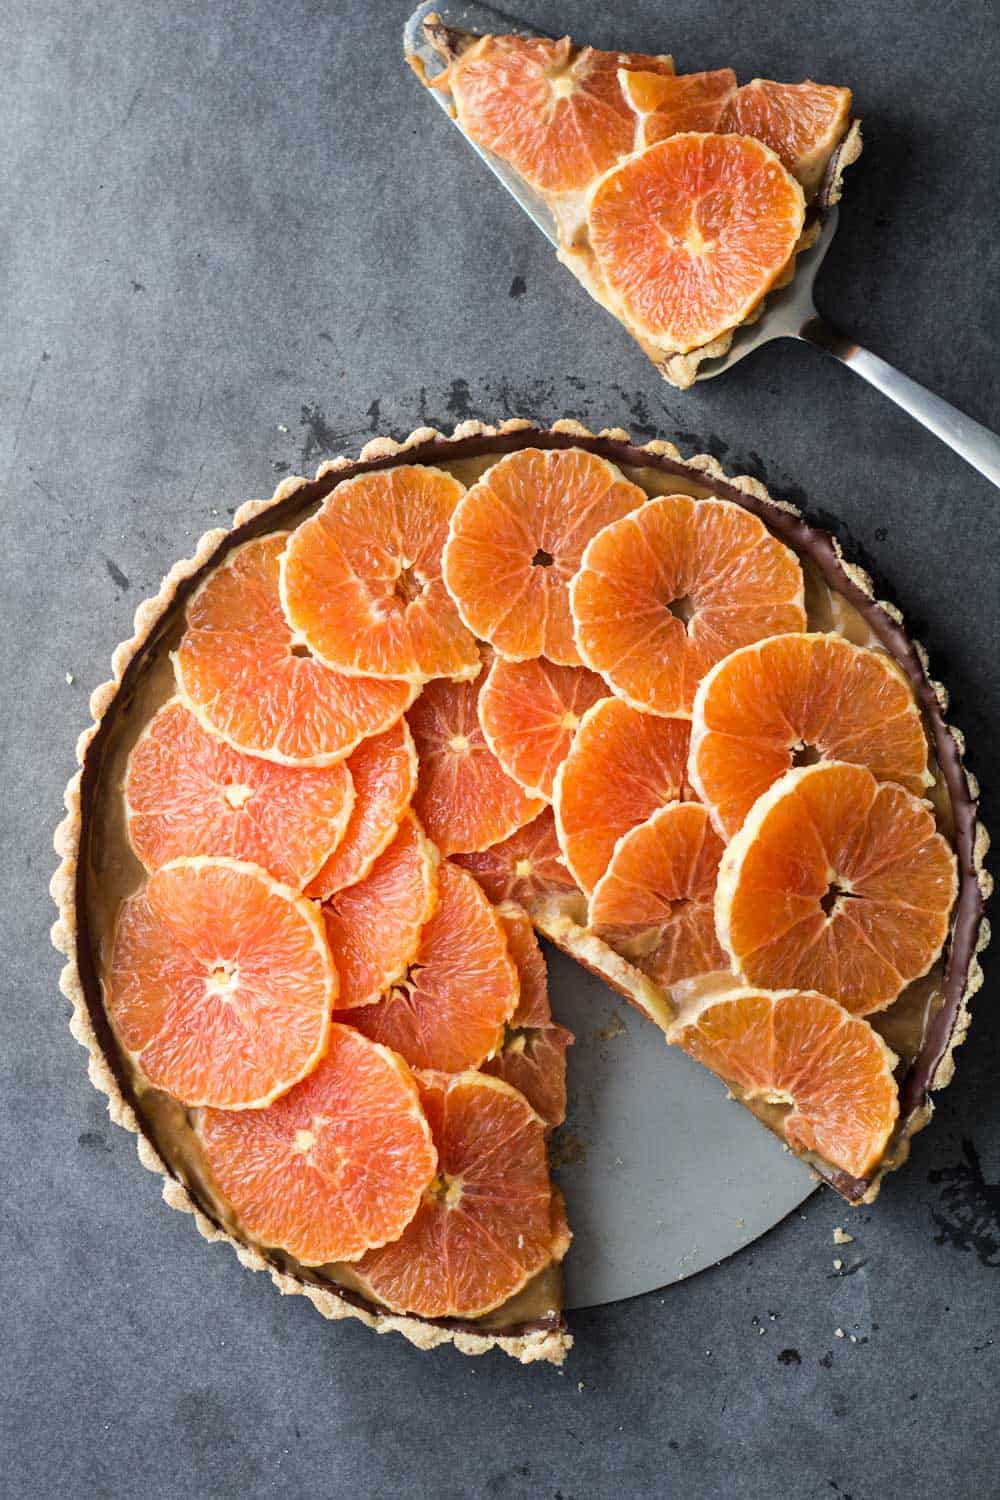 Piece cut out of chocolate orange tart